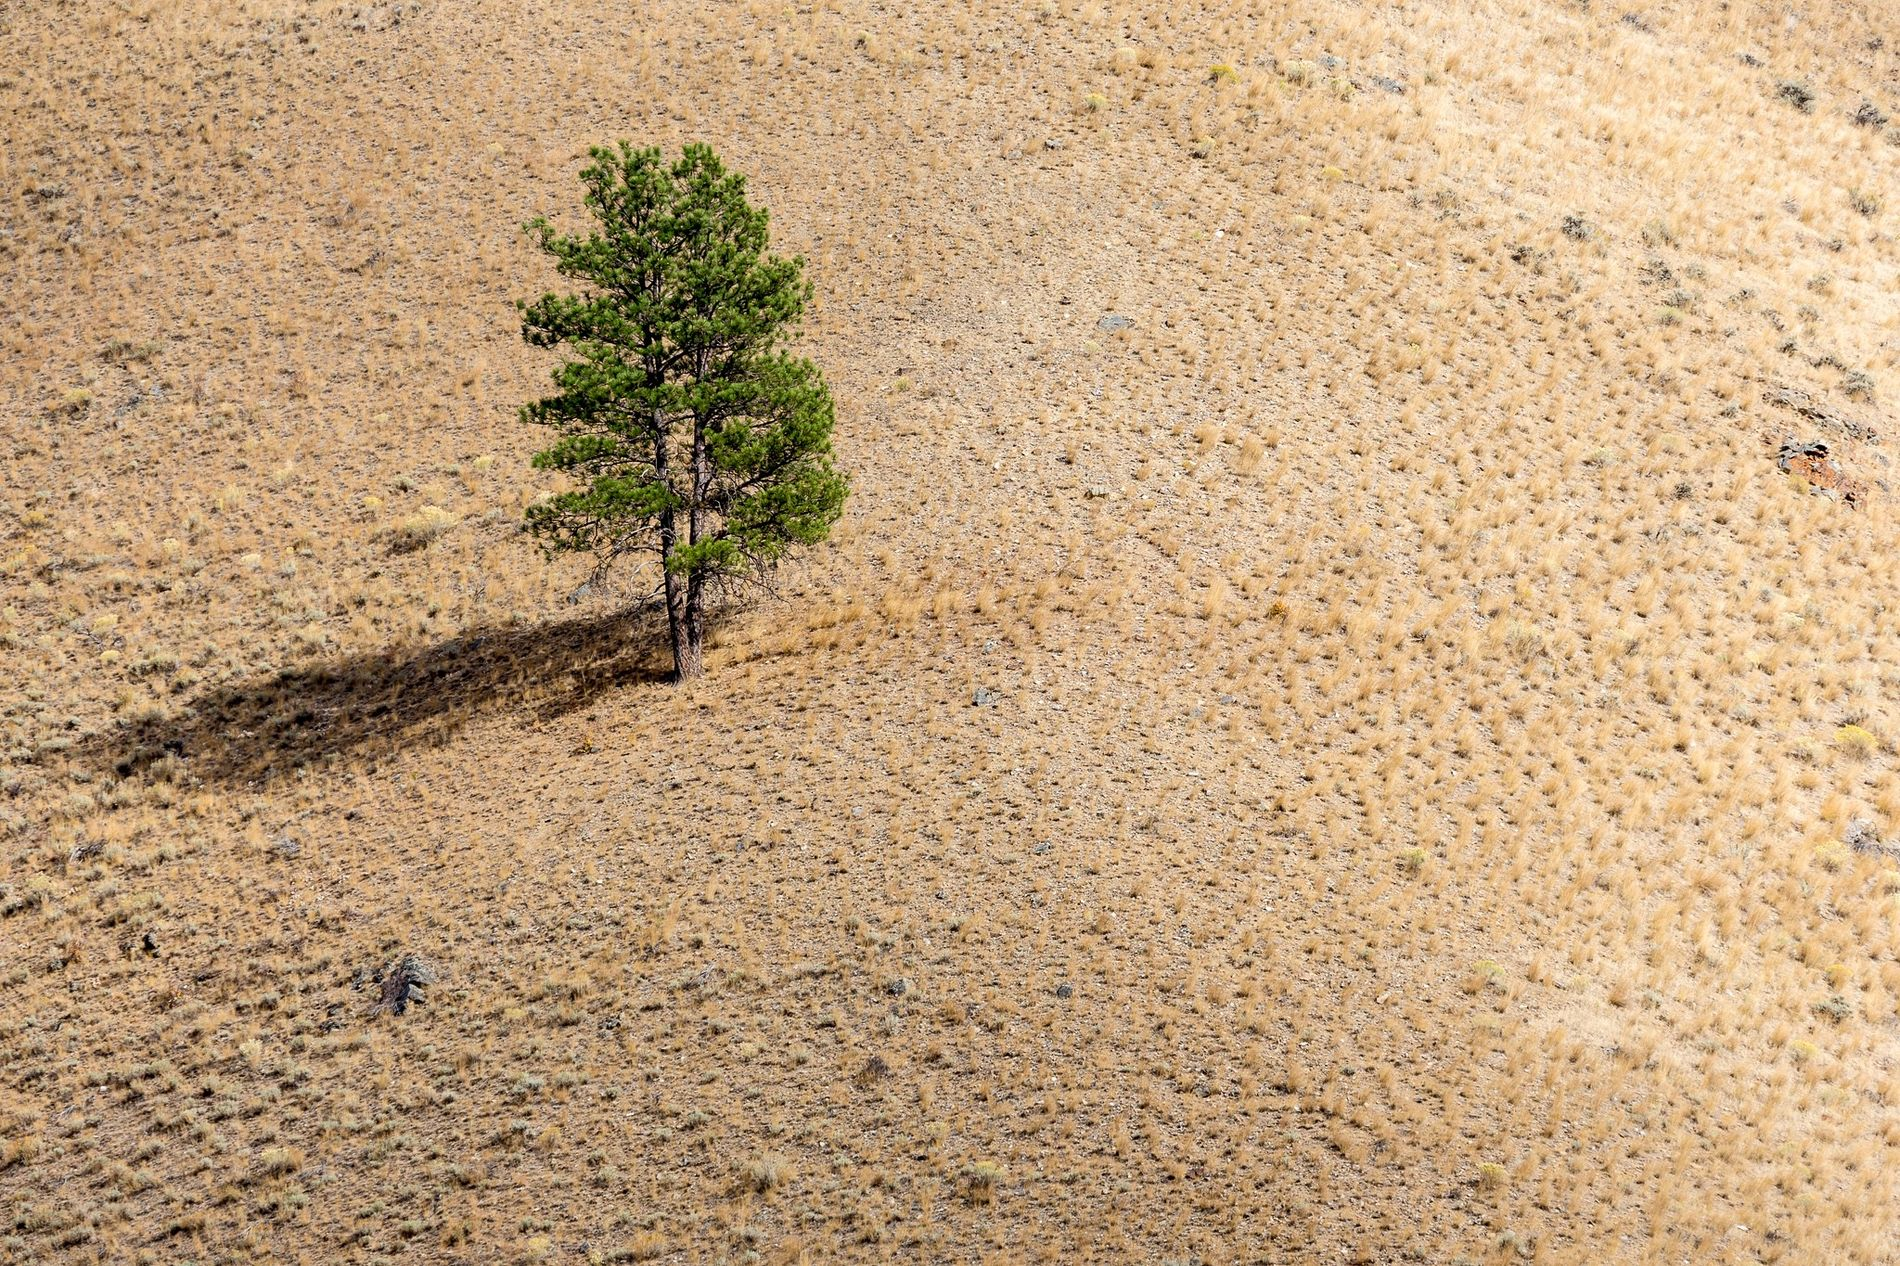 Trees Call for Help—And Now Scientists Can Understand